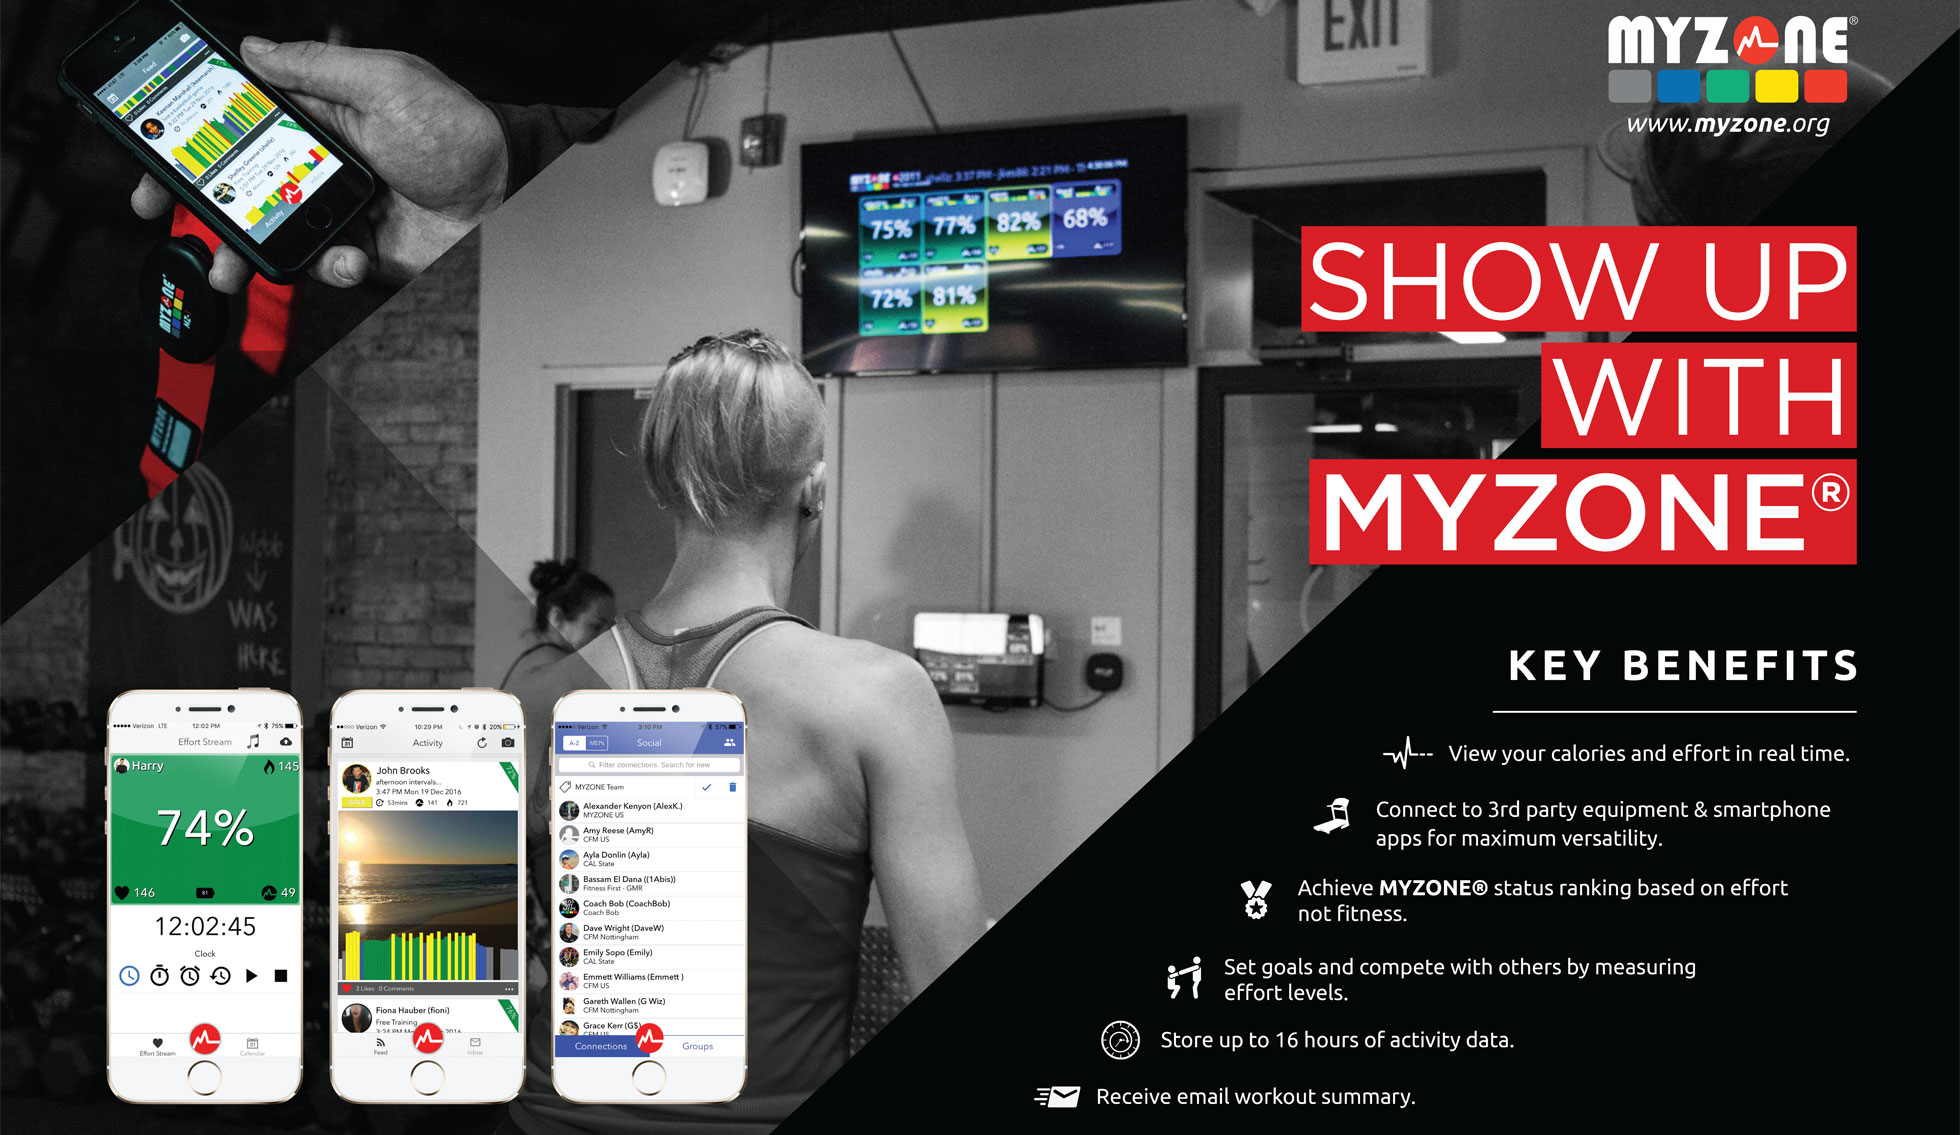 GET YOUR EFFORT REWARDED WITH MYZONE - Track your effort during workouts using heart rate zones and MEPs! Compete in challenges, share your results on social media, and compare your point standings with your friends!